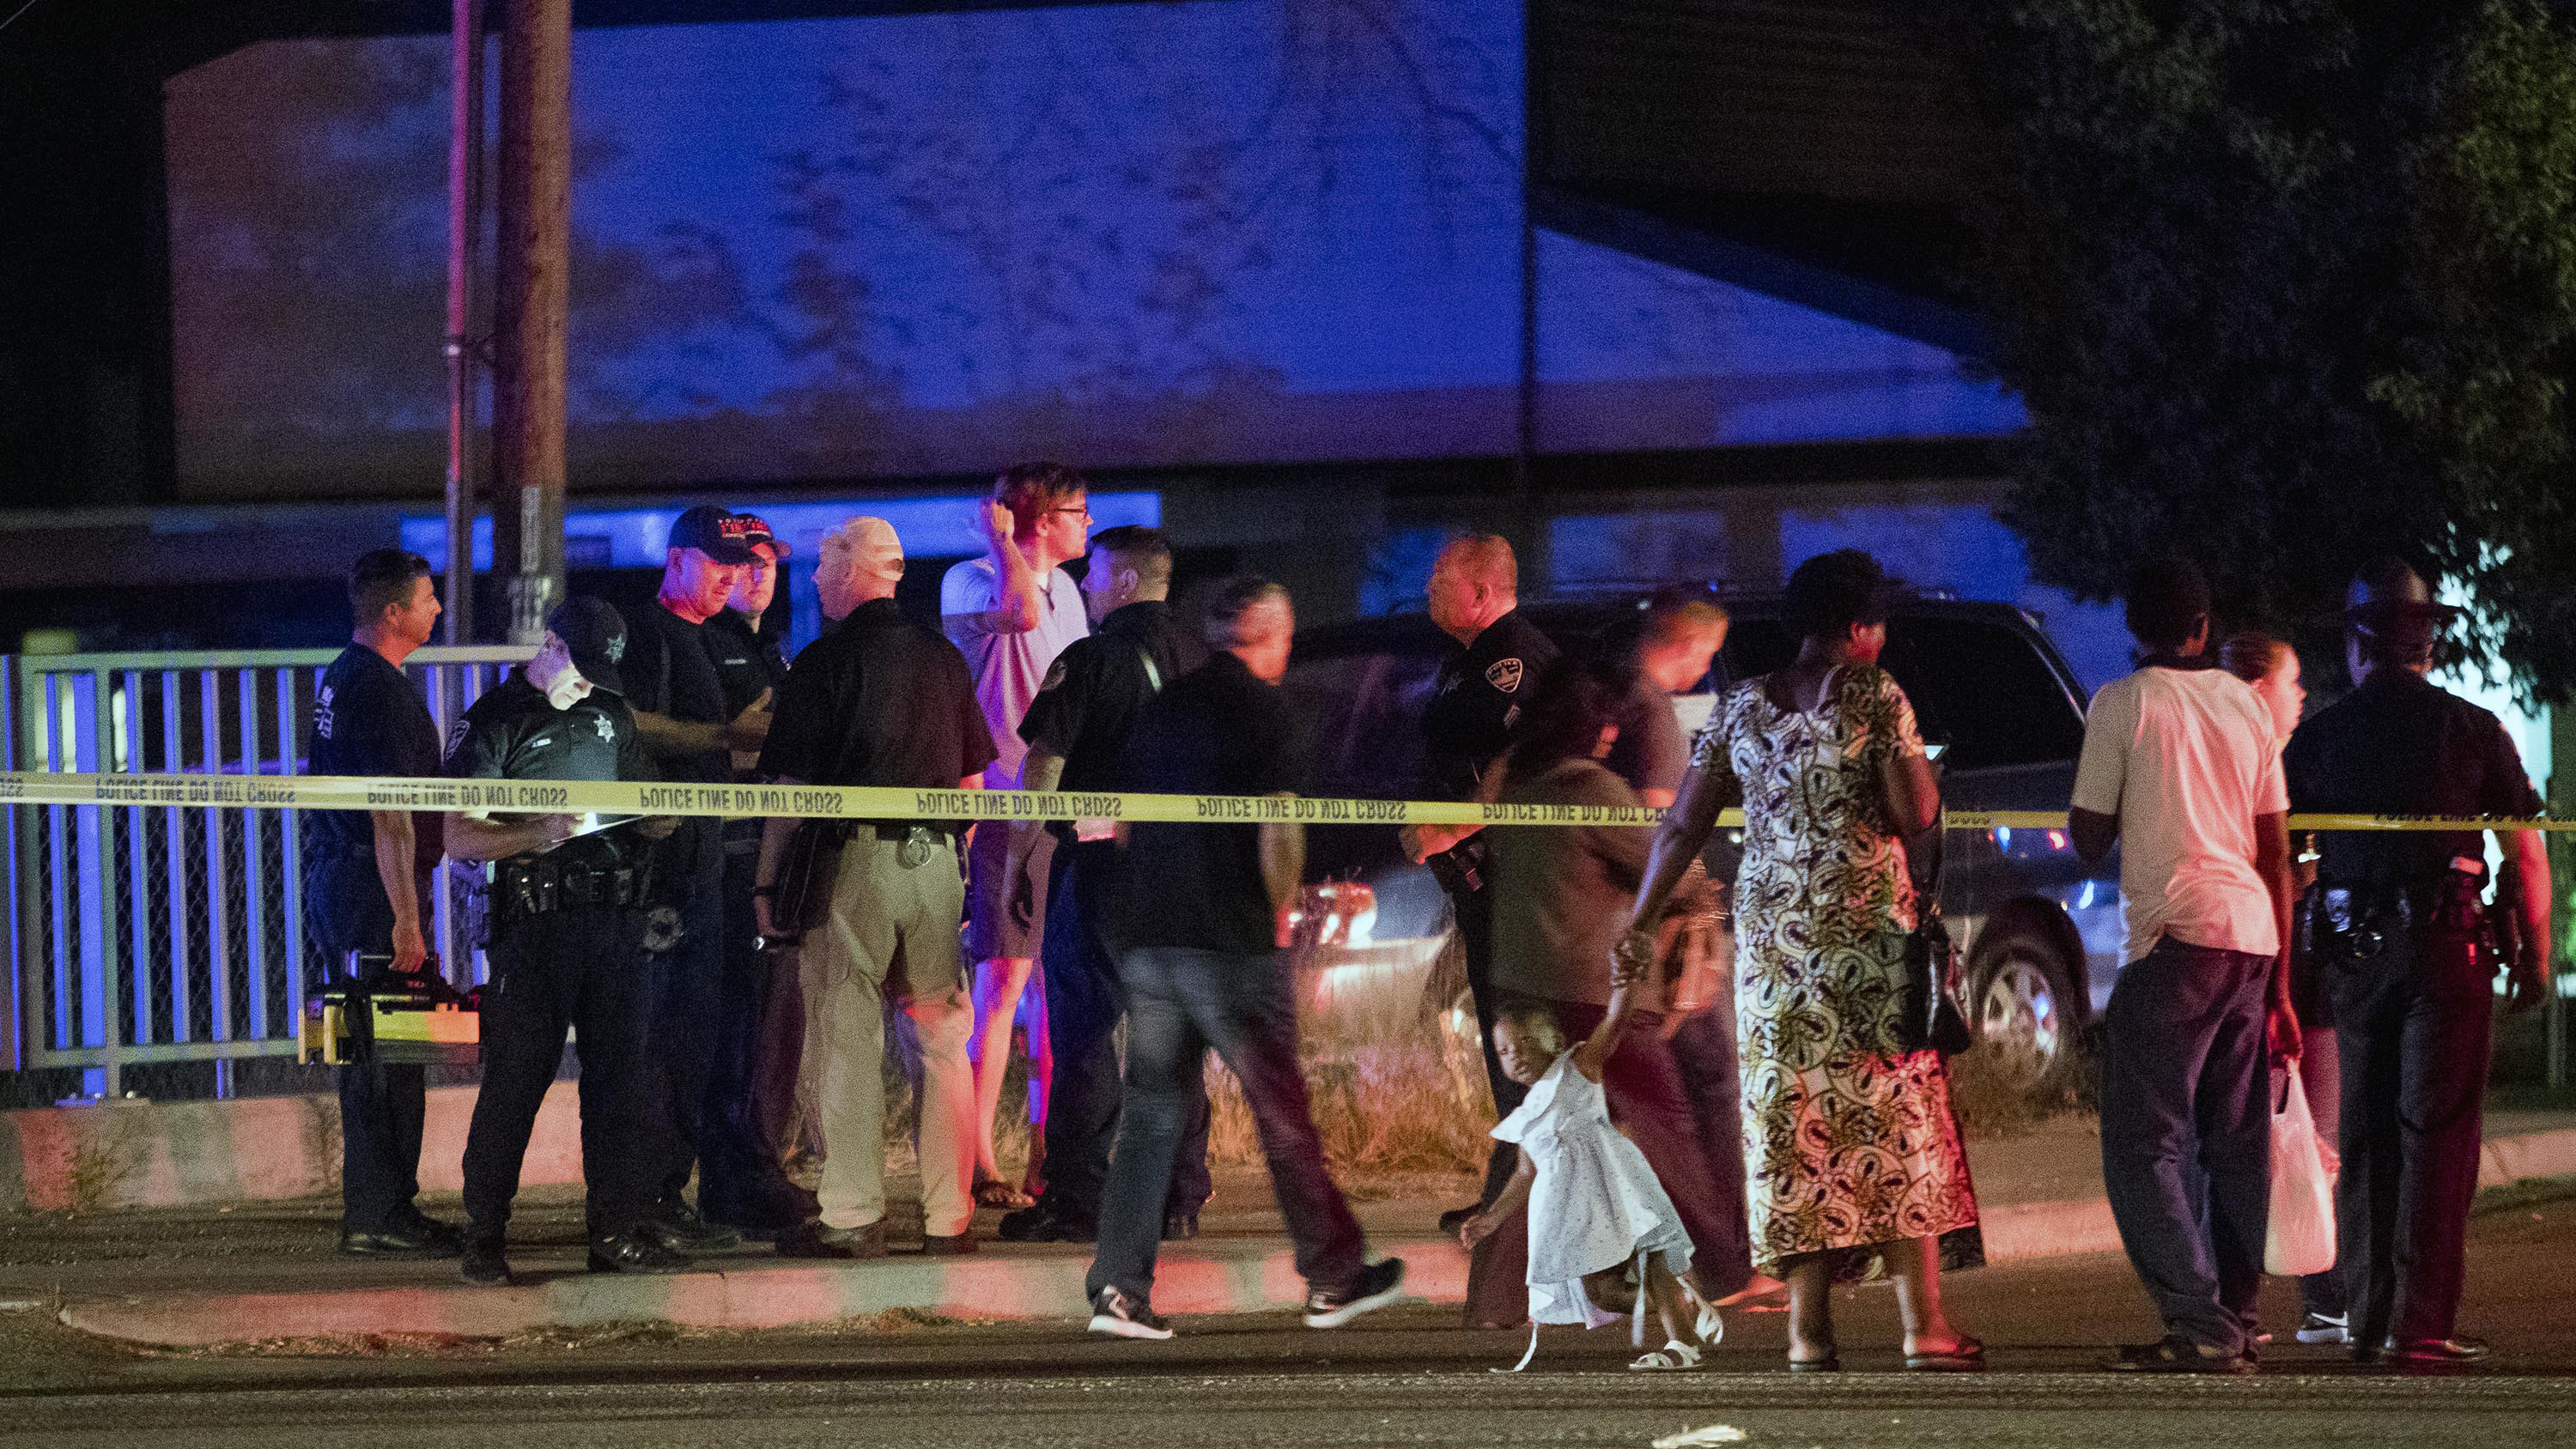 Refugees living in apartments near the corner of State and Wyle streets in Boise, Idaho were reported to be among the nine stabbing victims on Saturday, June 30, 2018. Many families in the area were awaiting information as Boise police investigated the crime scene. The call to police was made at 8:46 p.m. All nine victims were transported to the hospital and police apprehended a suspect at gunpoint soon after the incident.